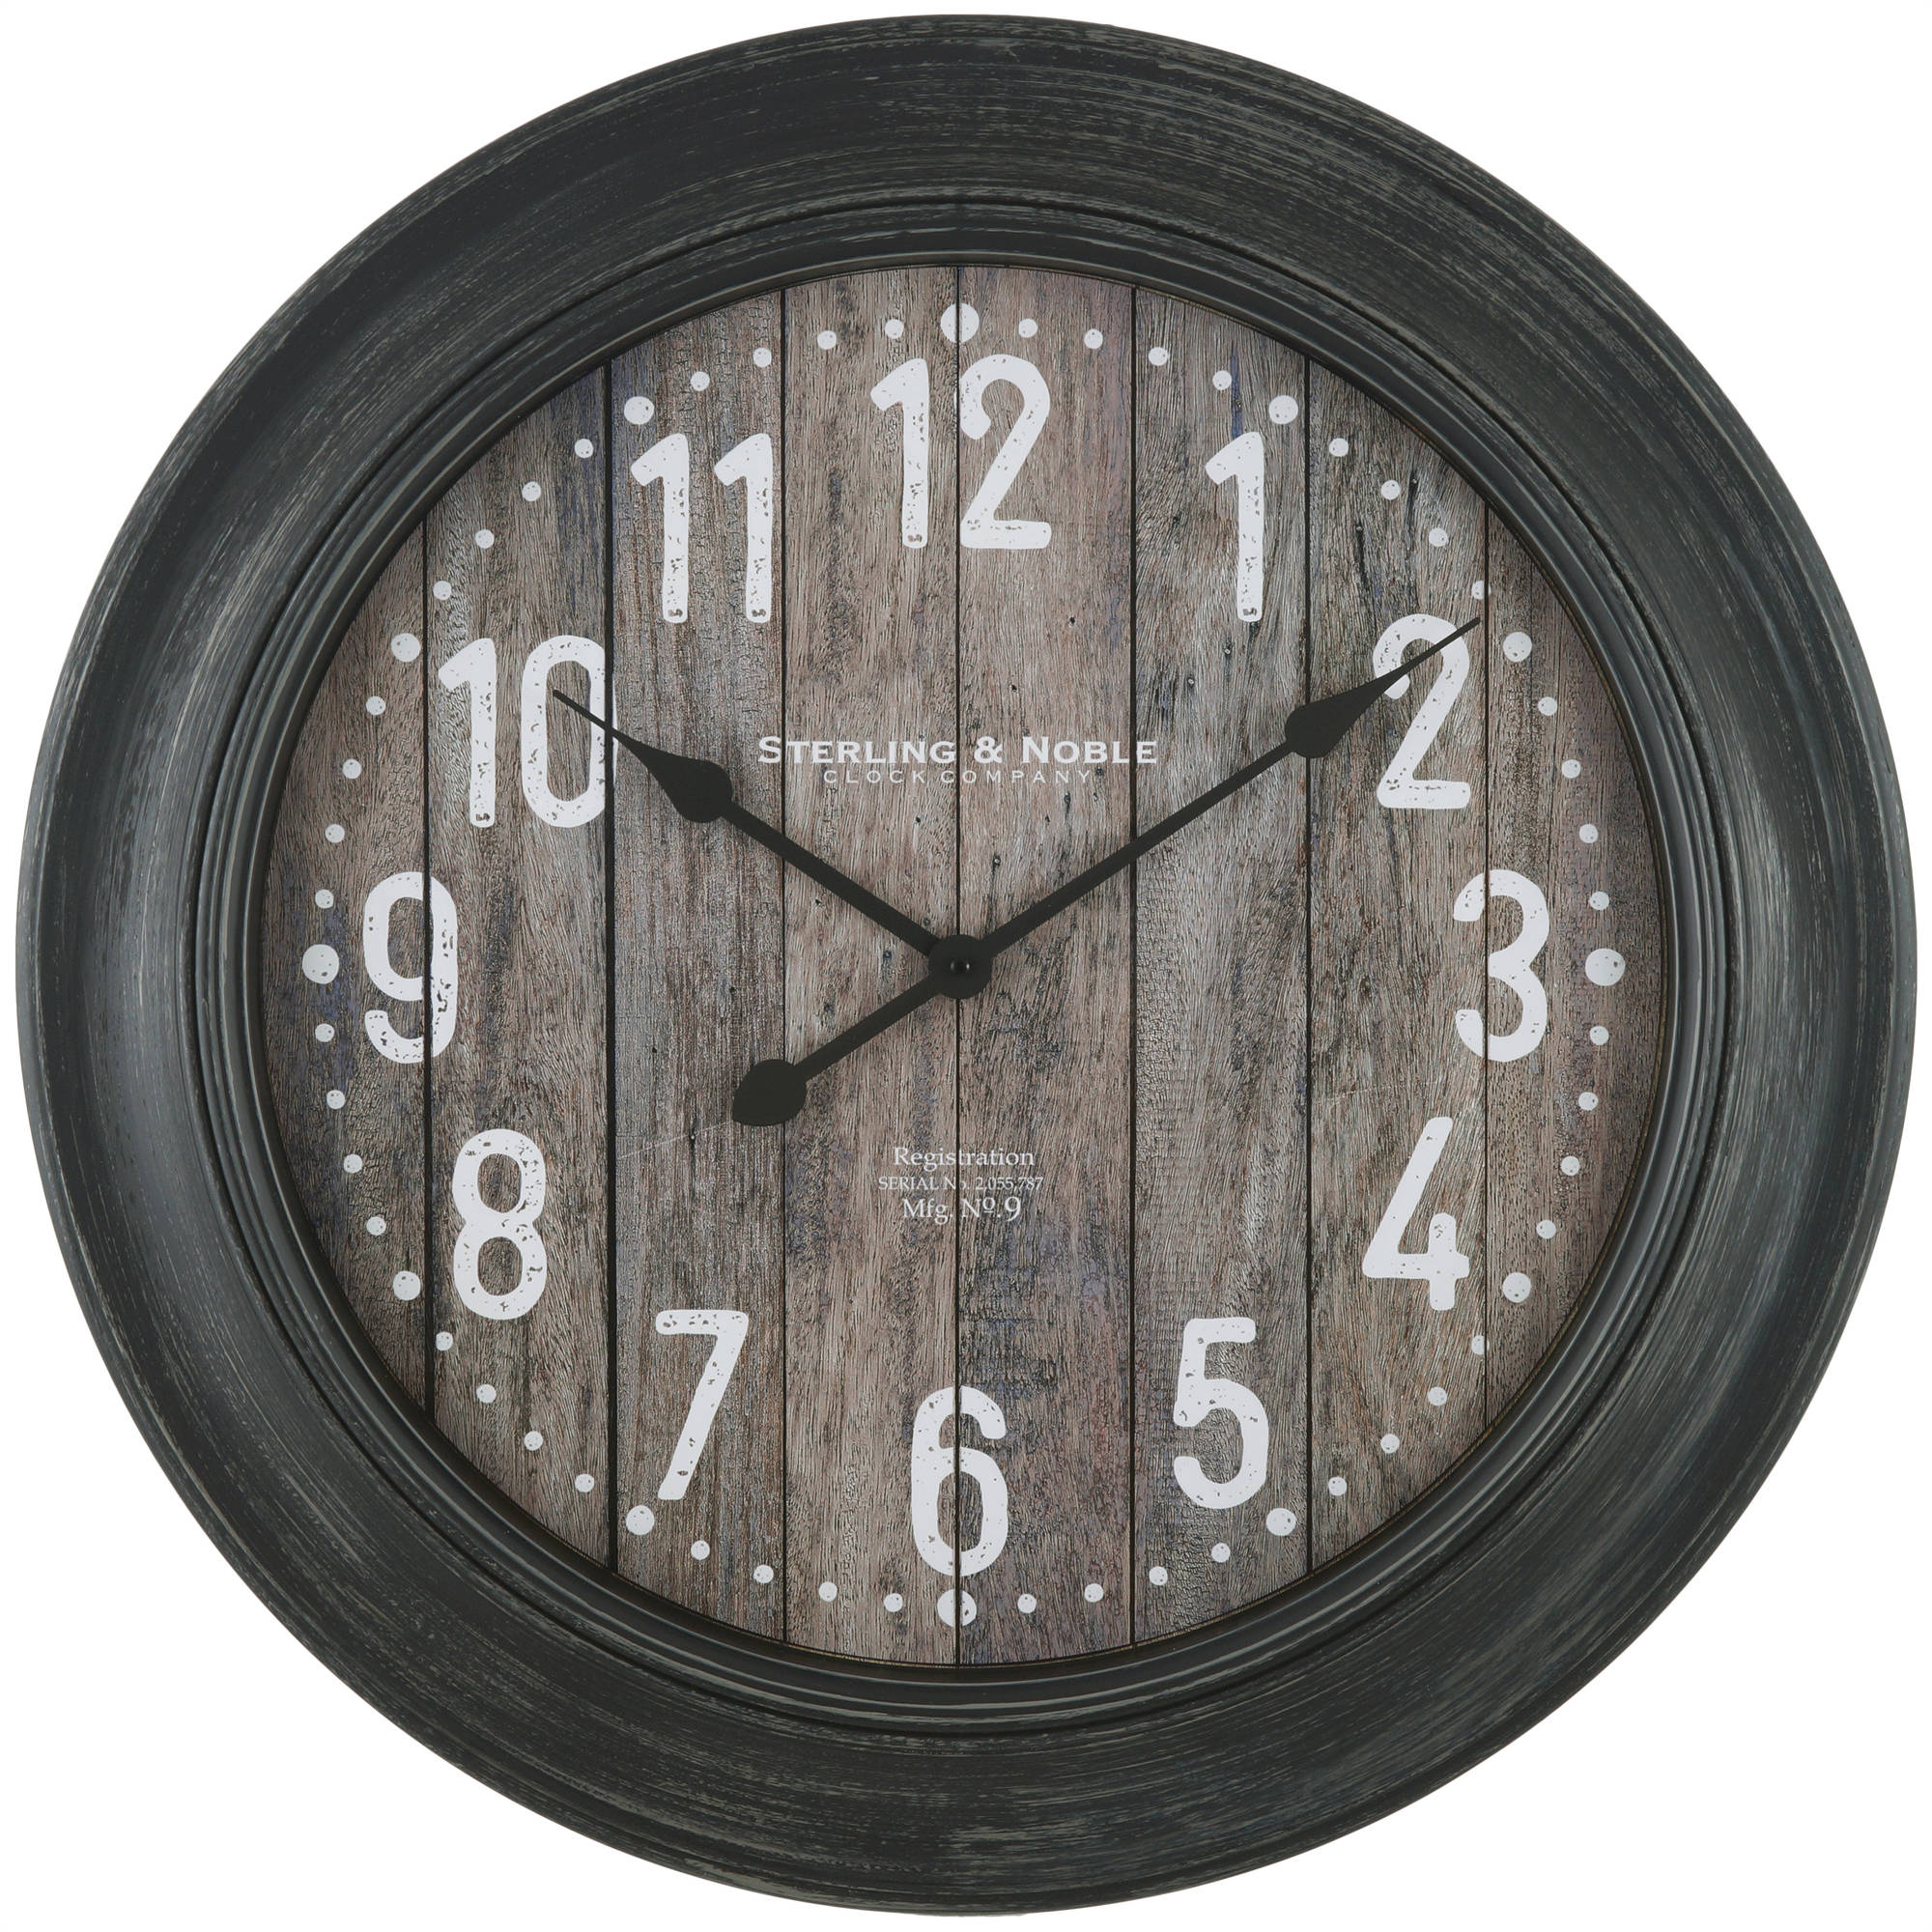 Better Homes & Gardens Rustic Round Wall Clock - 28""